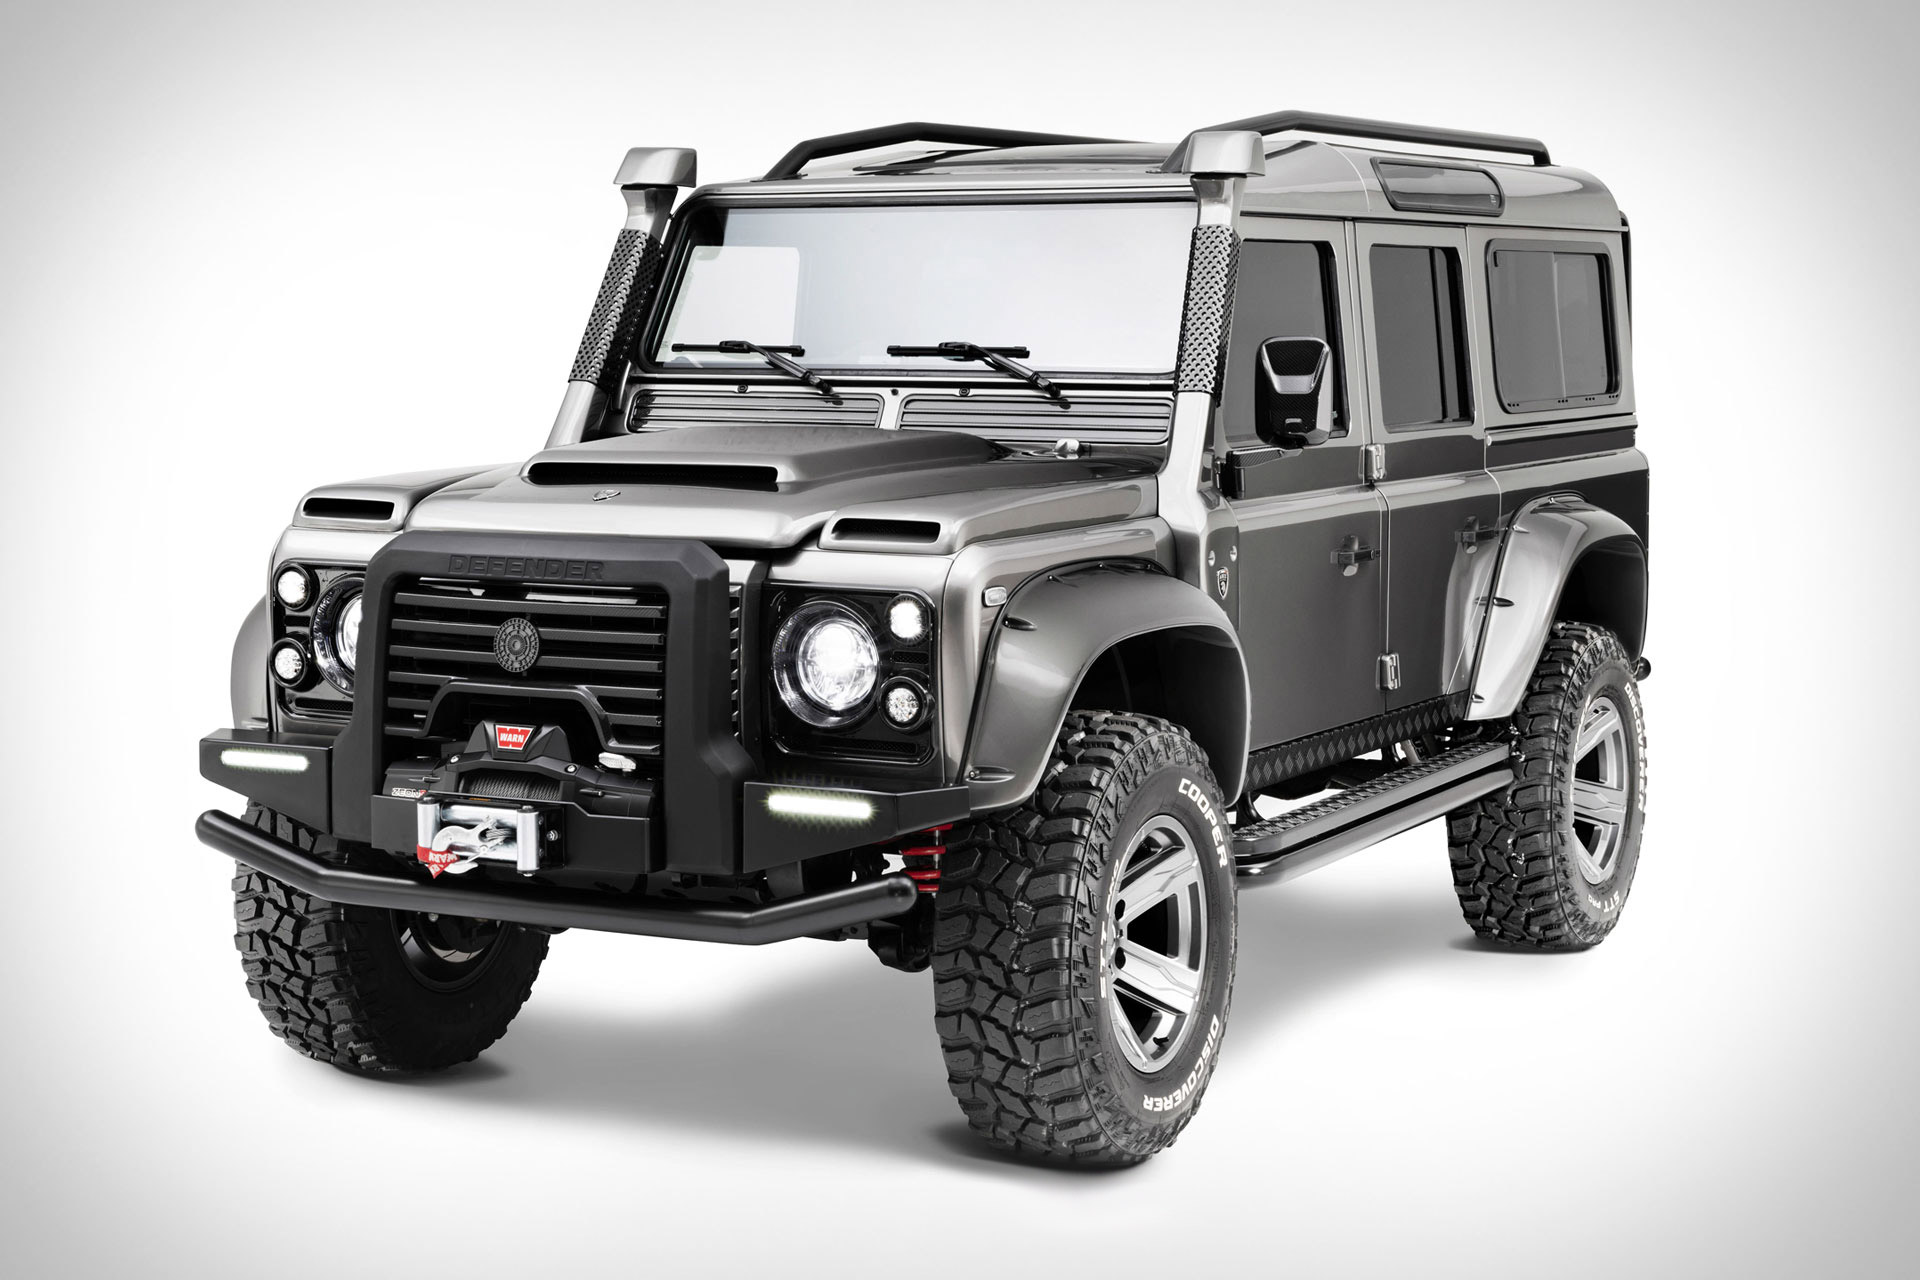 Ares Land Rover Defender Uncrate